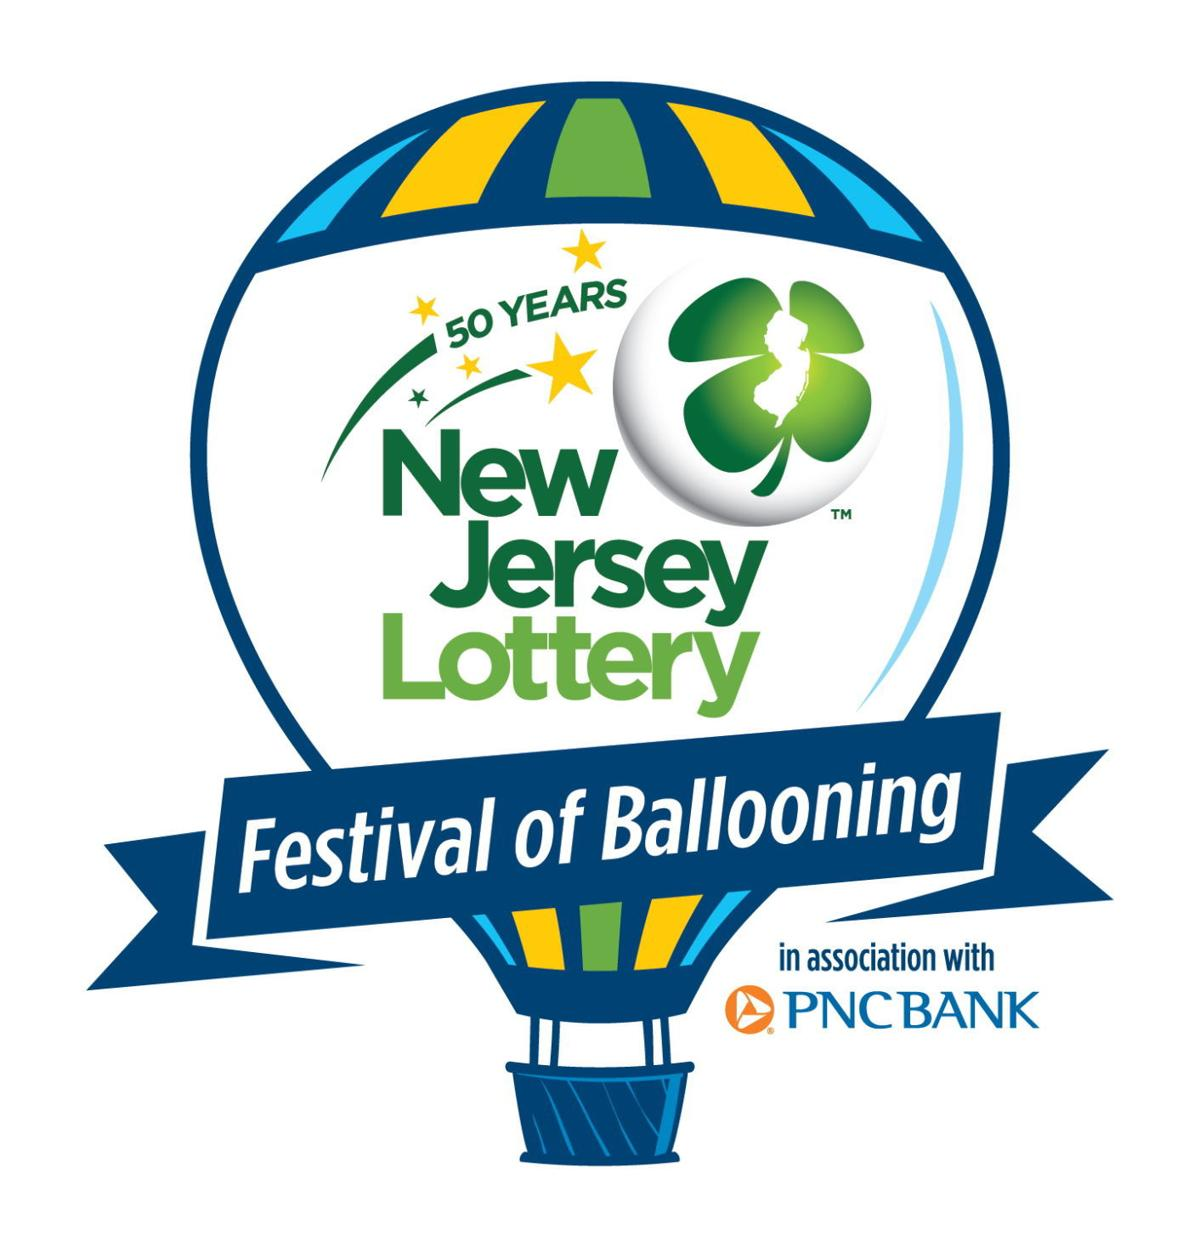 Balloon festival to return as New Jersey Lottery Festival of Ballooning